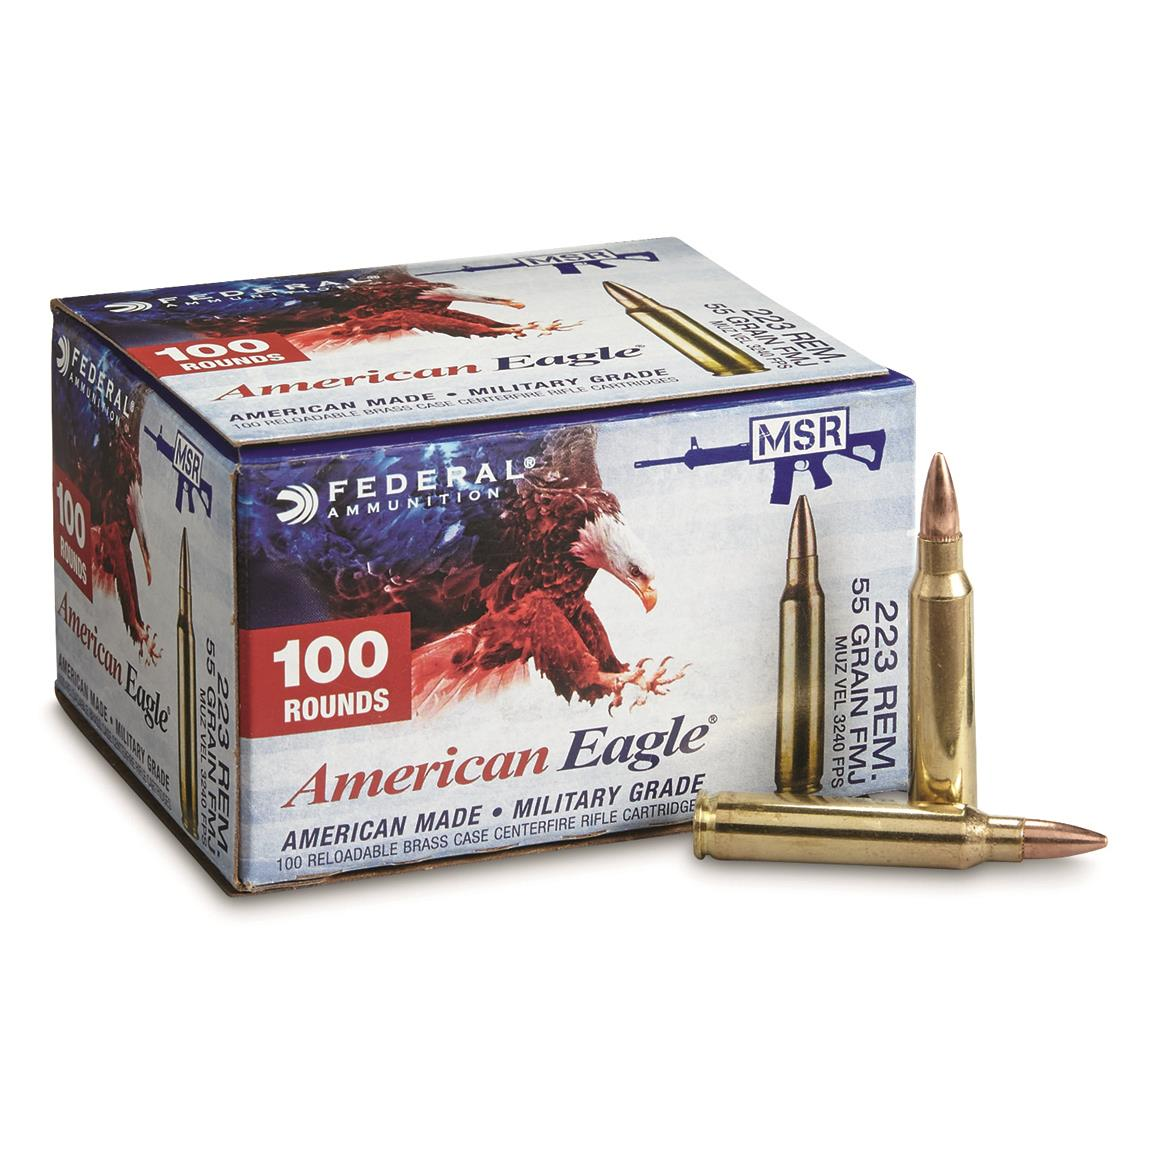 Federal® American Eagle™ .223, 55 Grain FMJ Ammo, 500 rounds